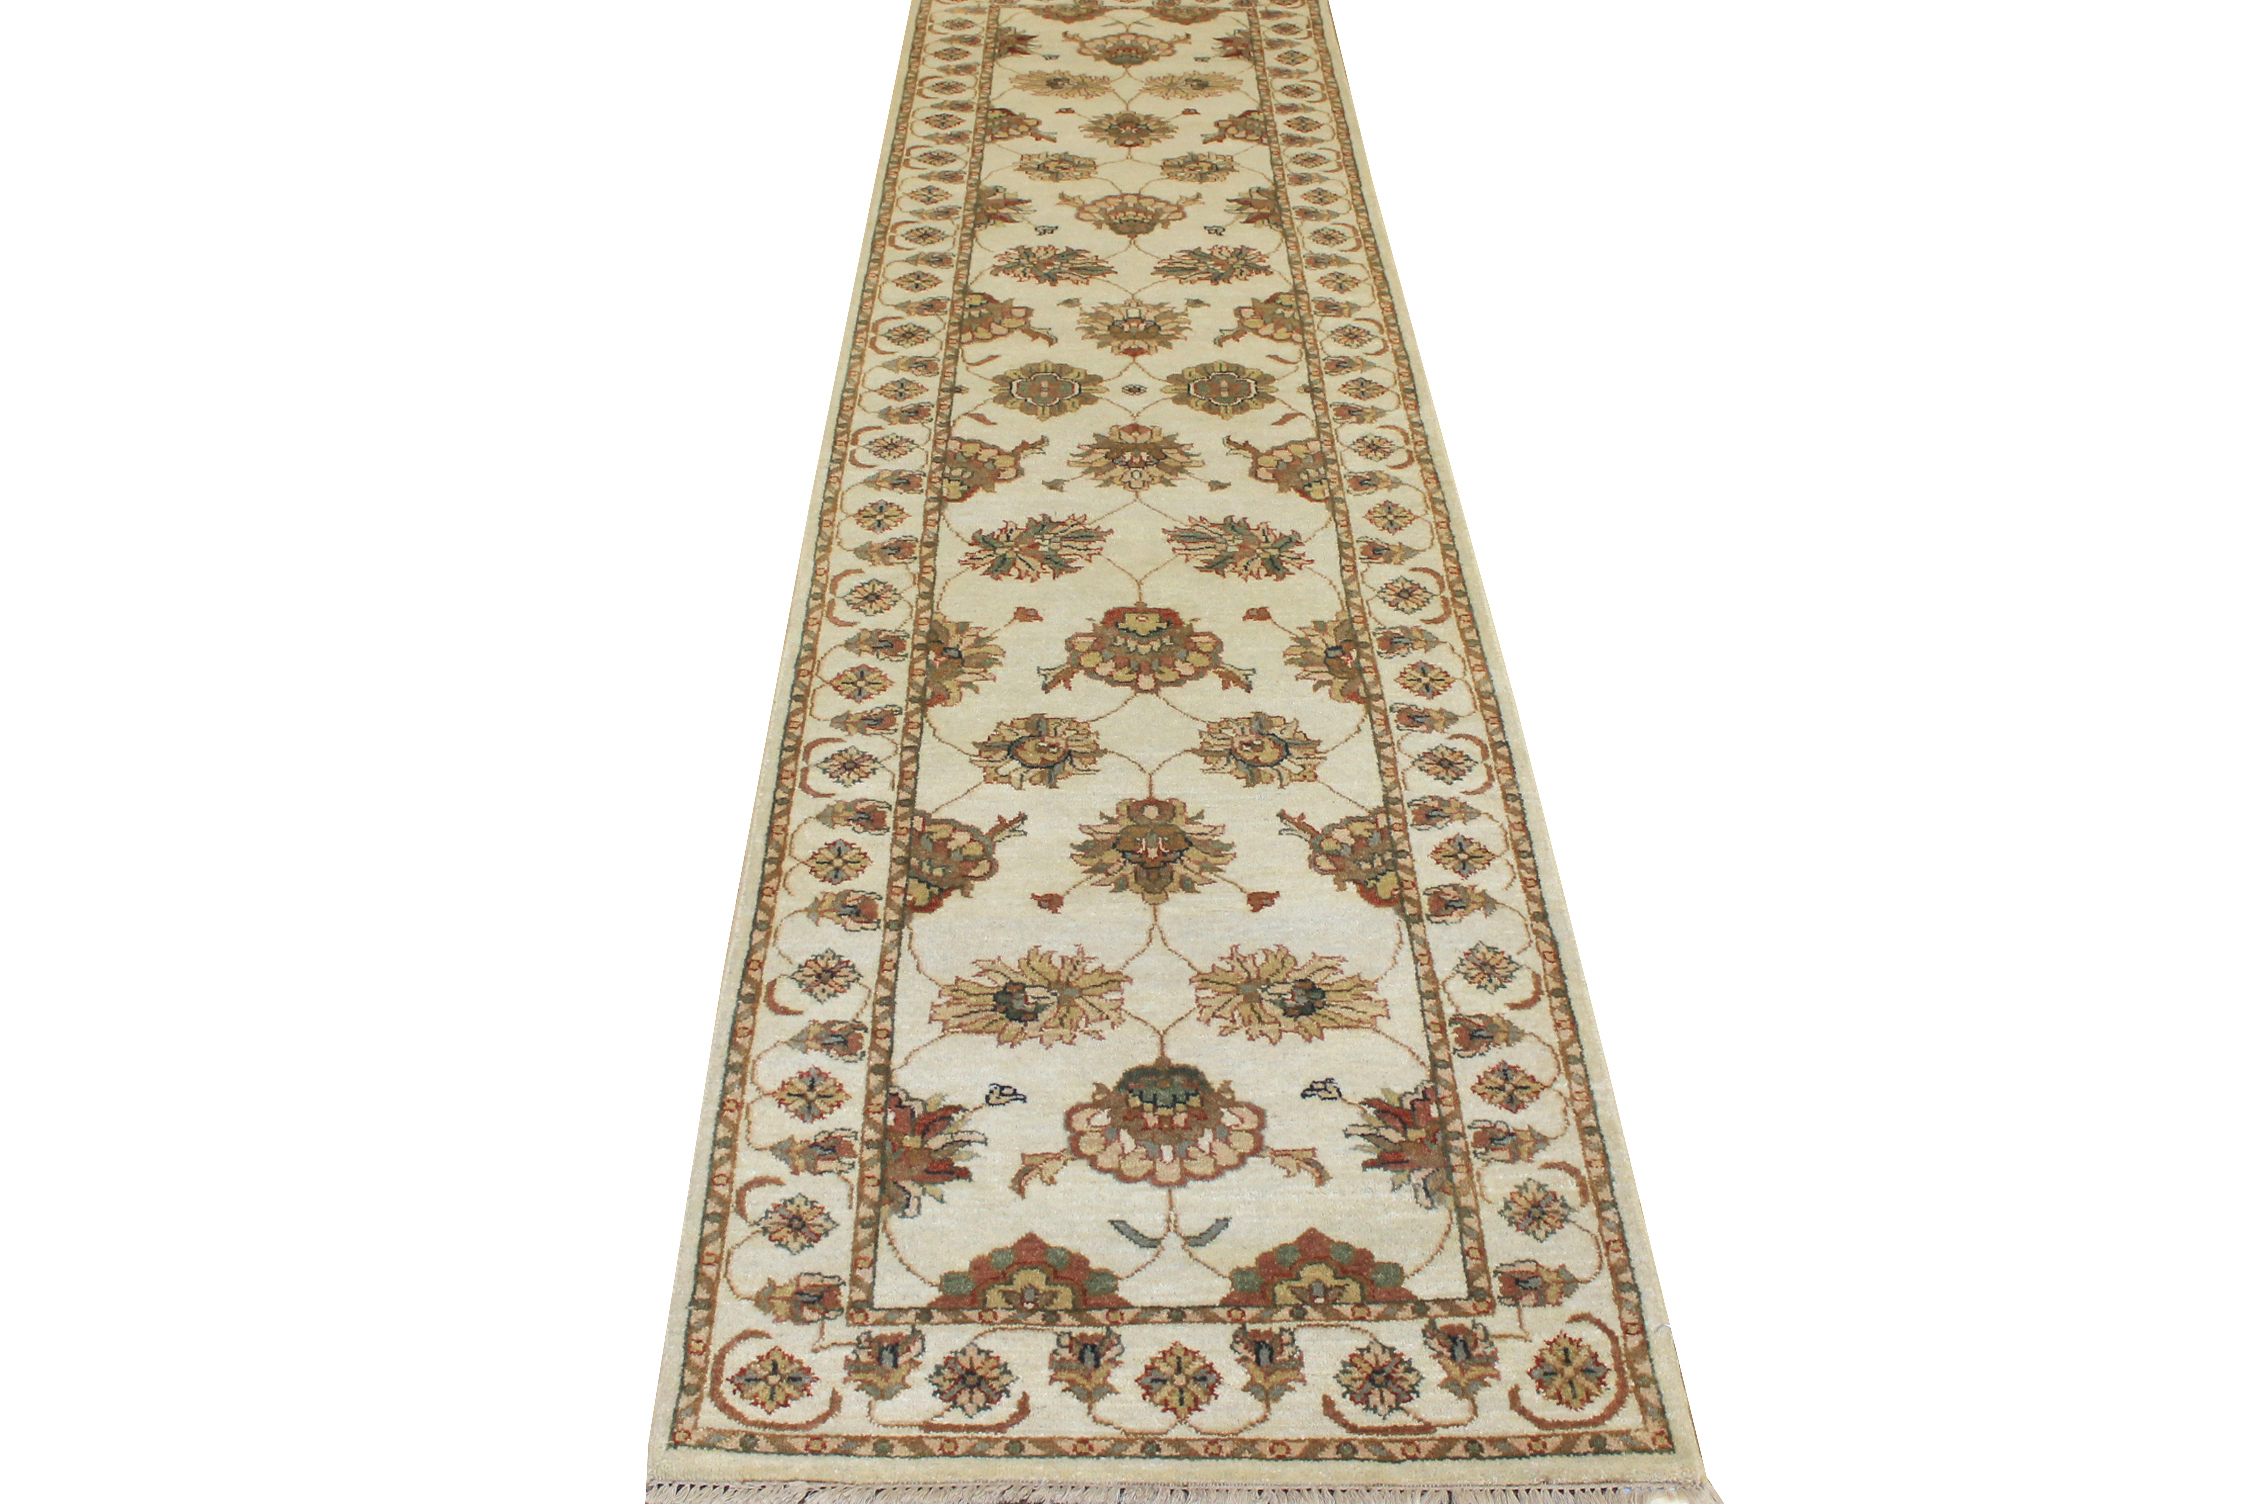 10 ft. Runner Traditional Hand Knotted Wool Area Rug - MR15662